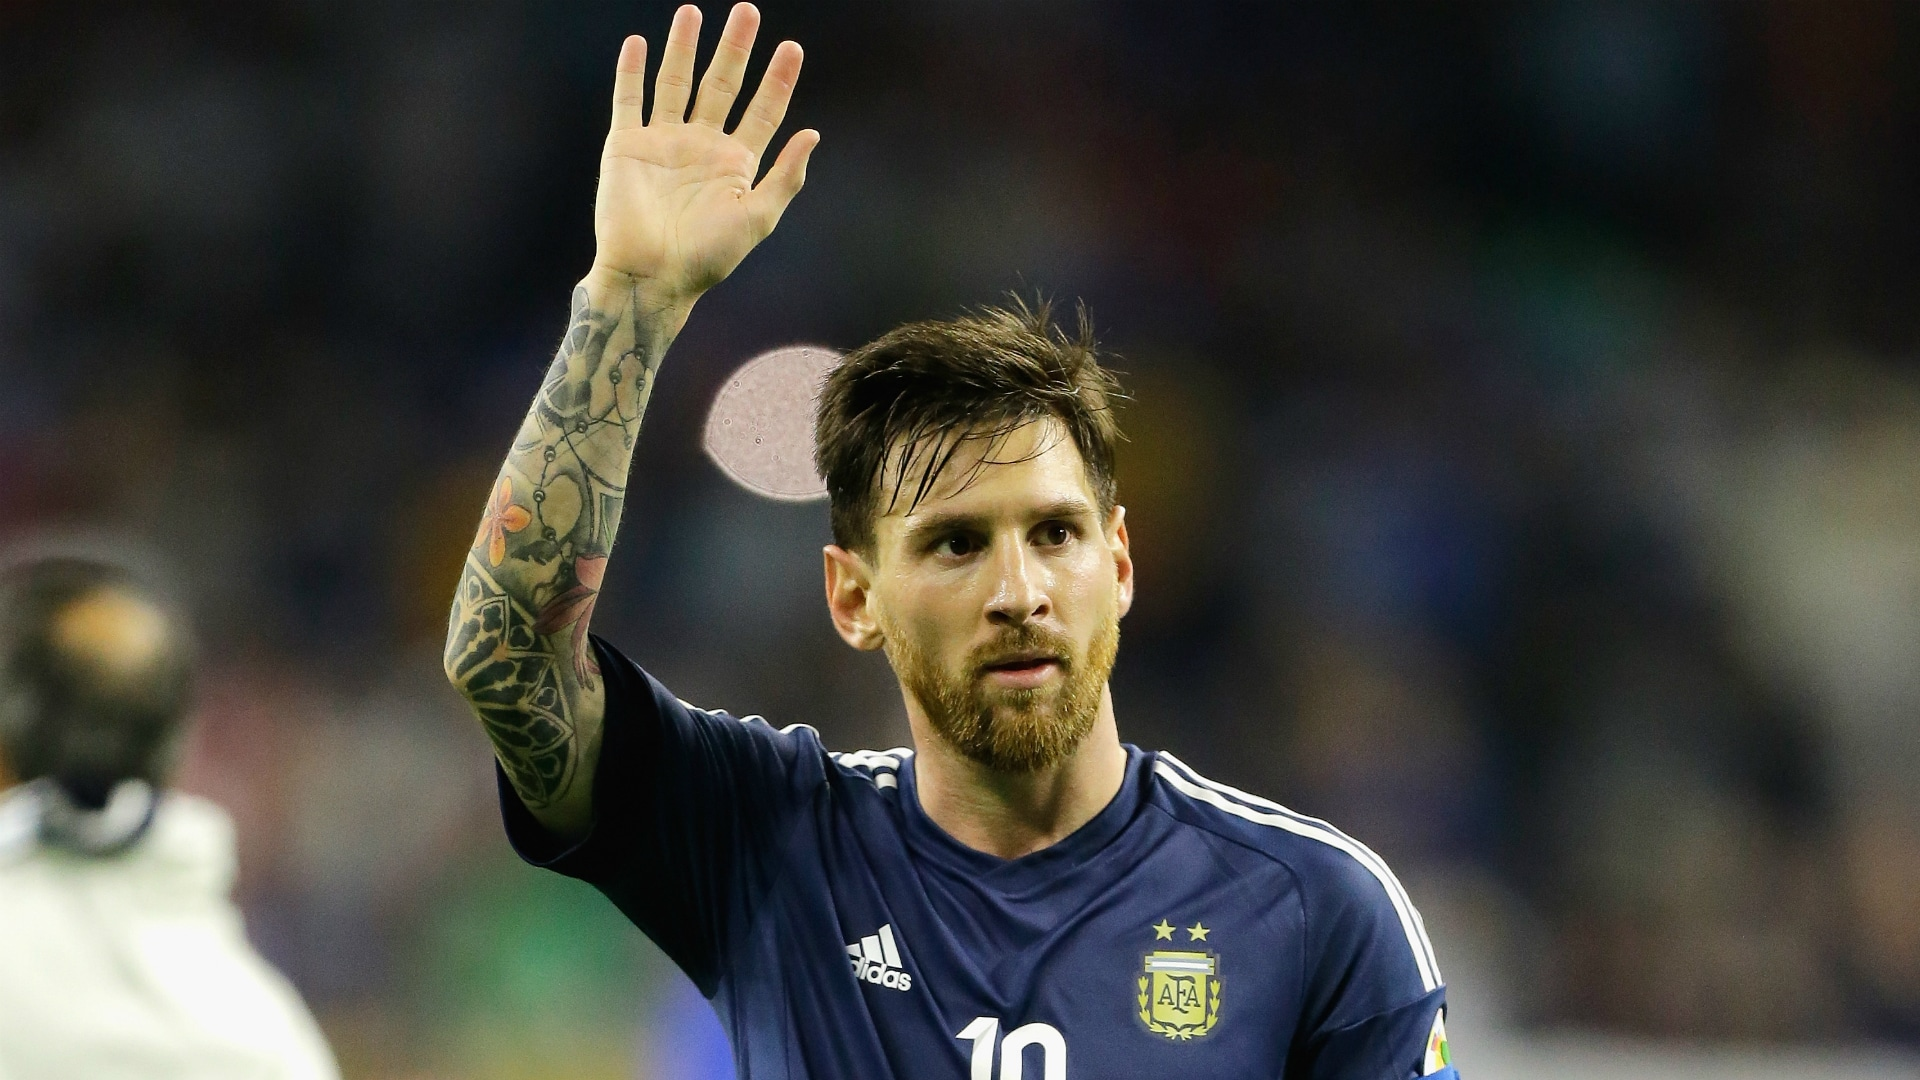 alignthougts-lionelmessi-announced-retirement-from-the-national-team-after-losing-against-chile